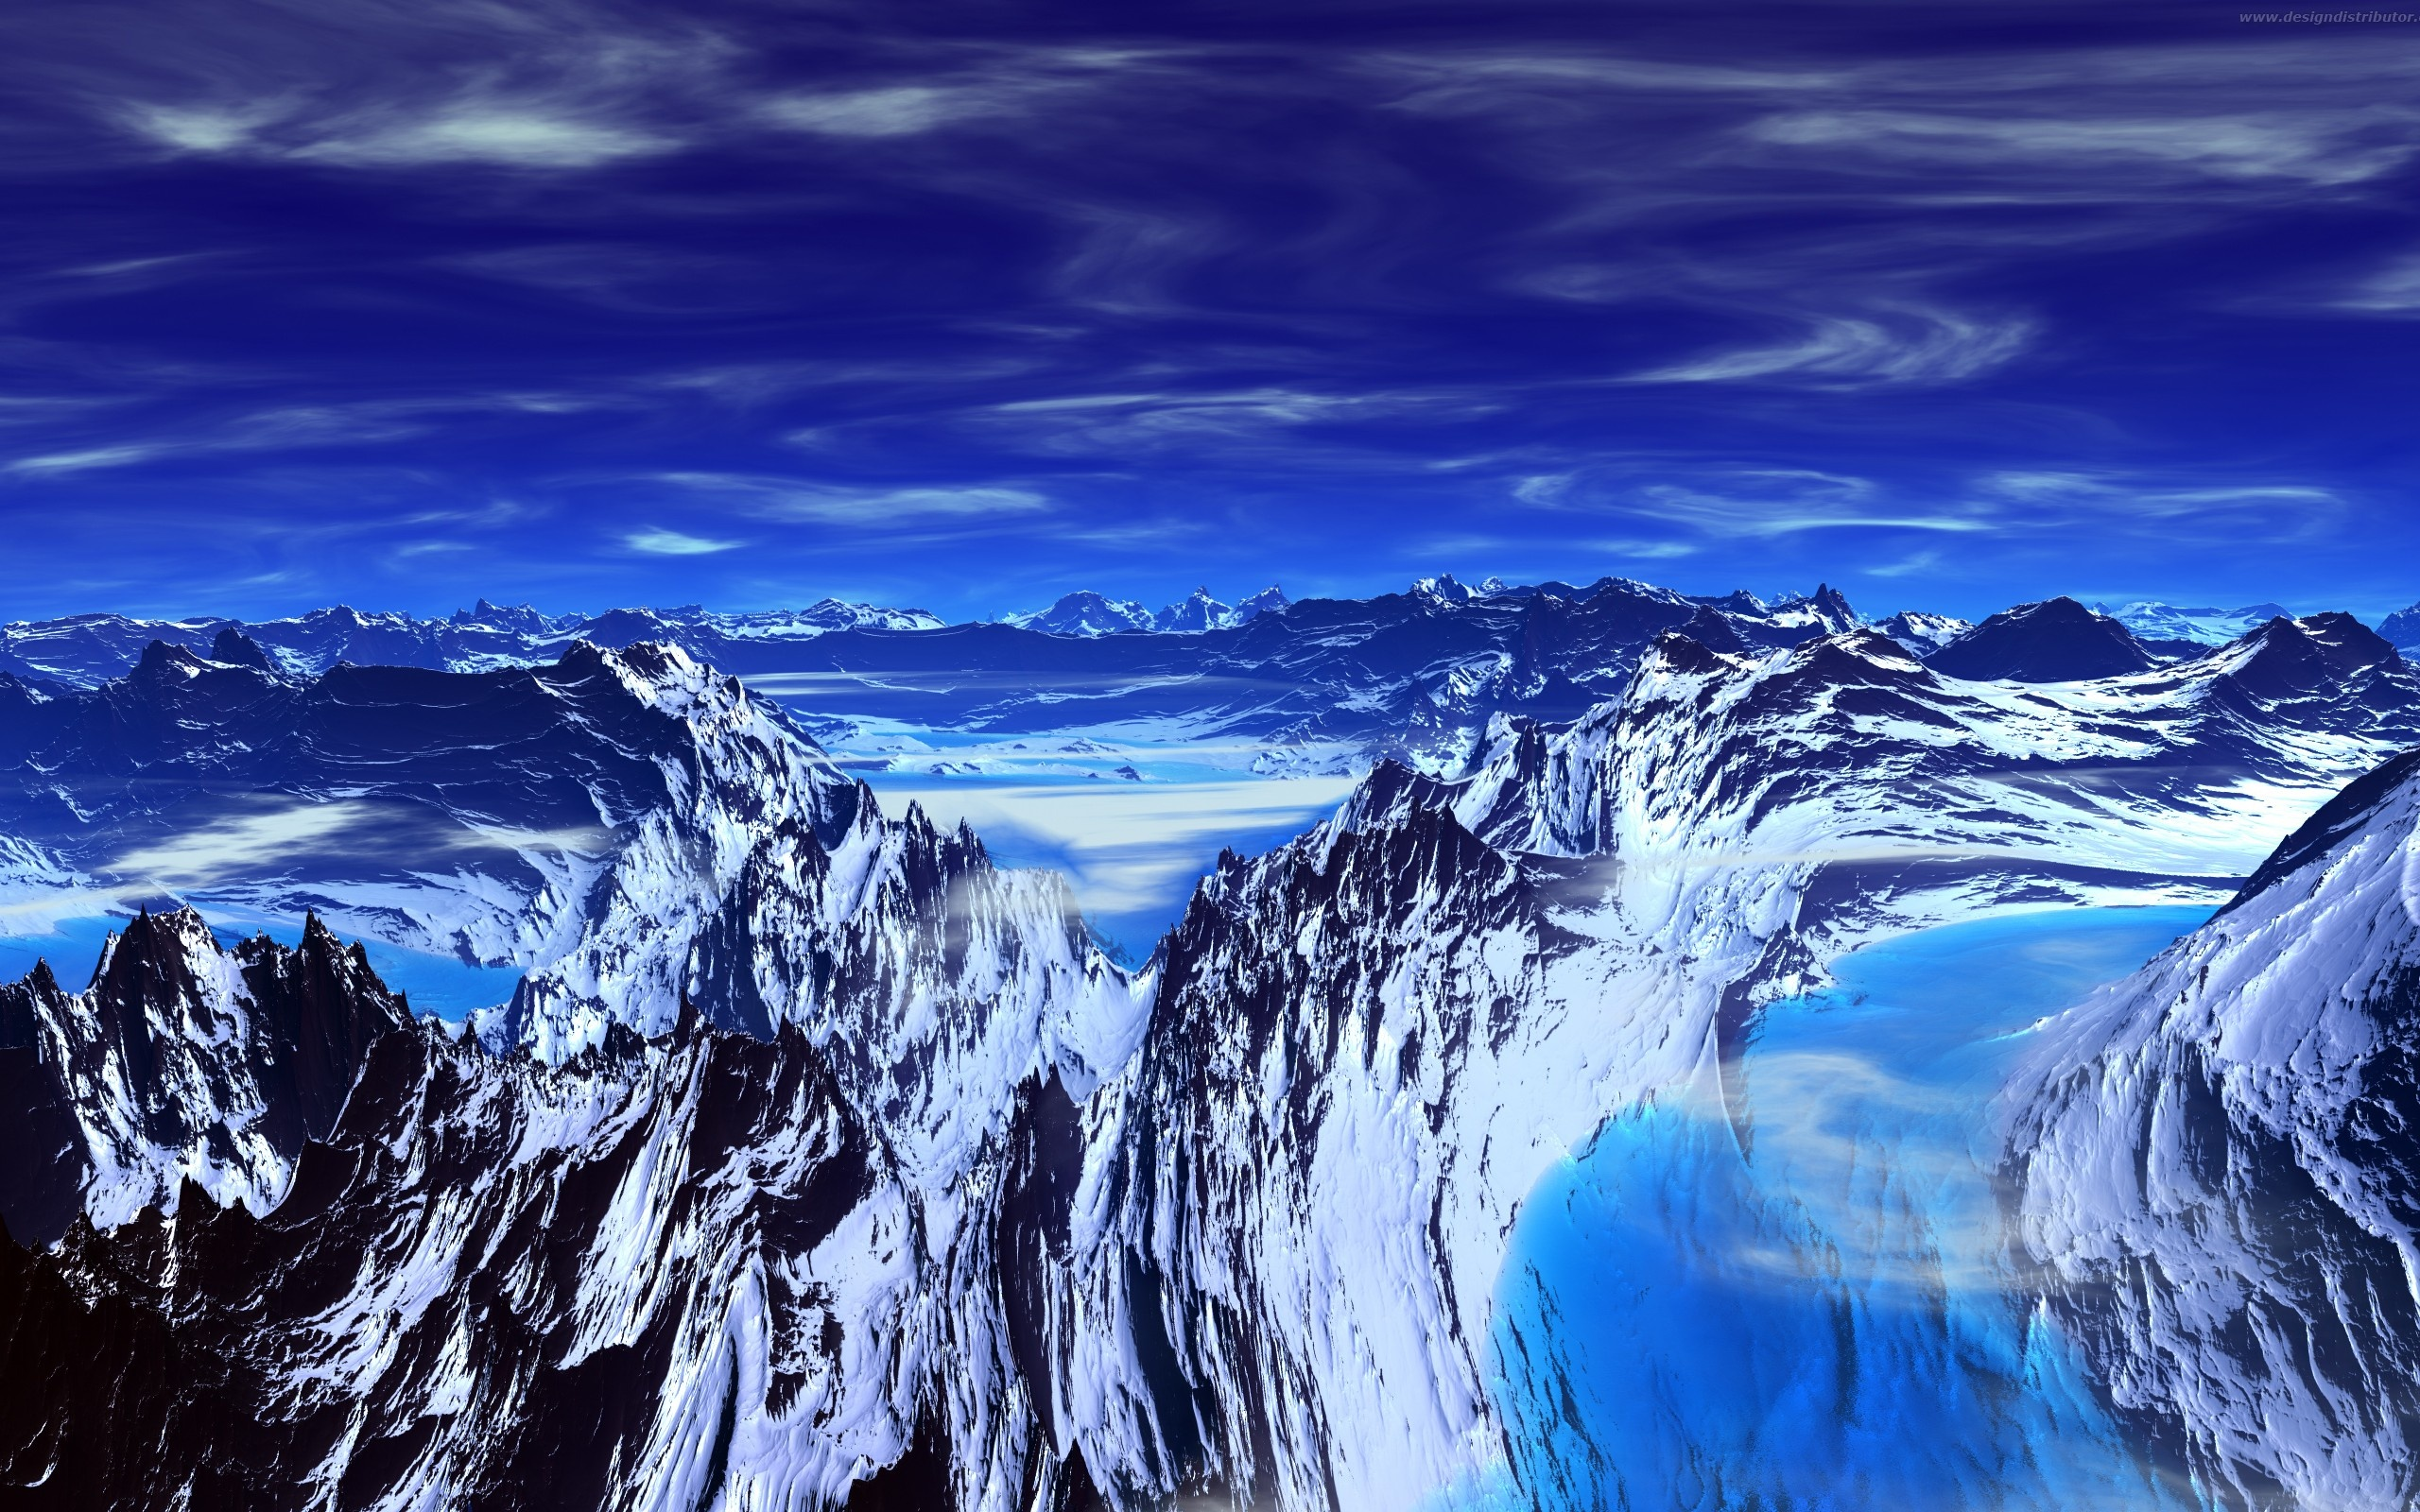 3d mountain wallpaper - photo #31